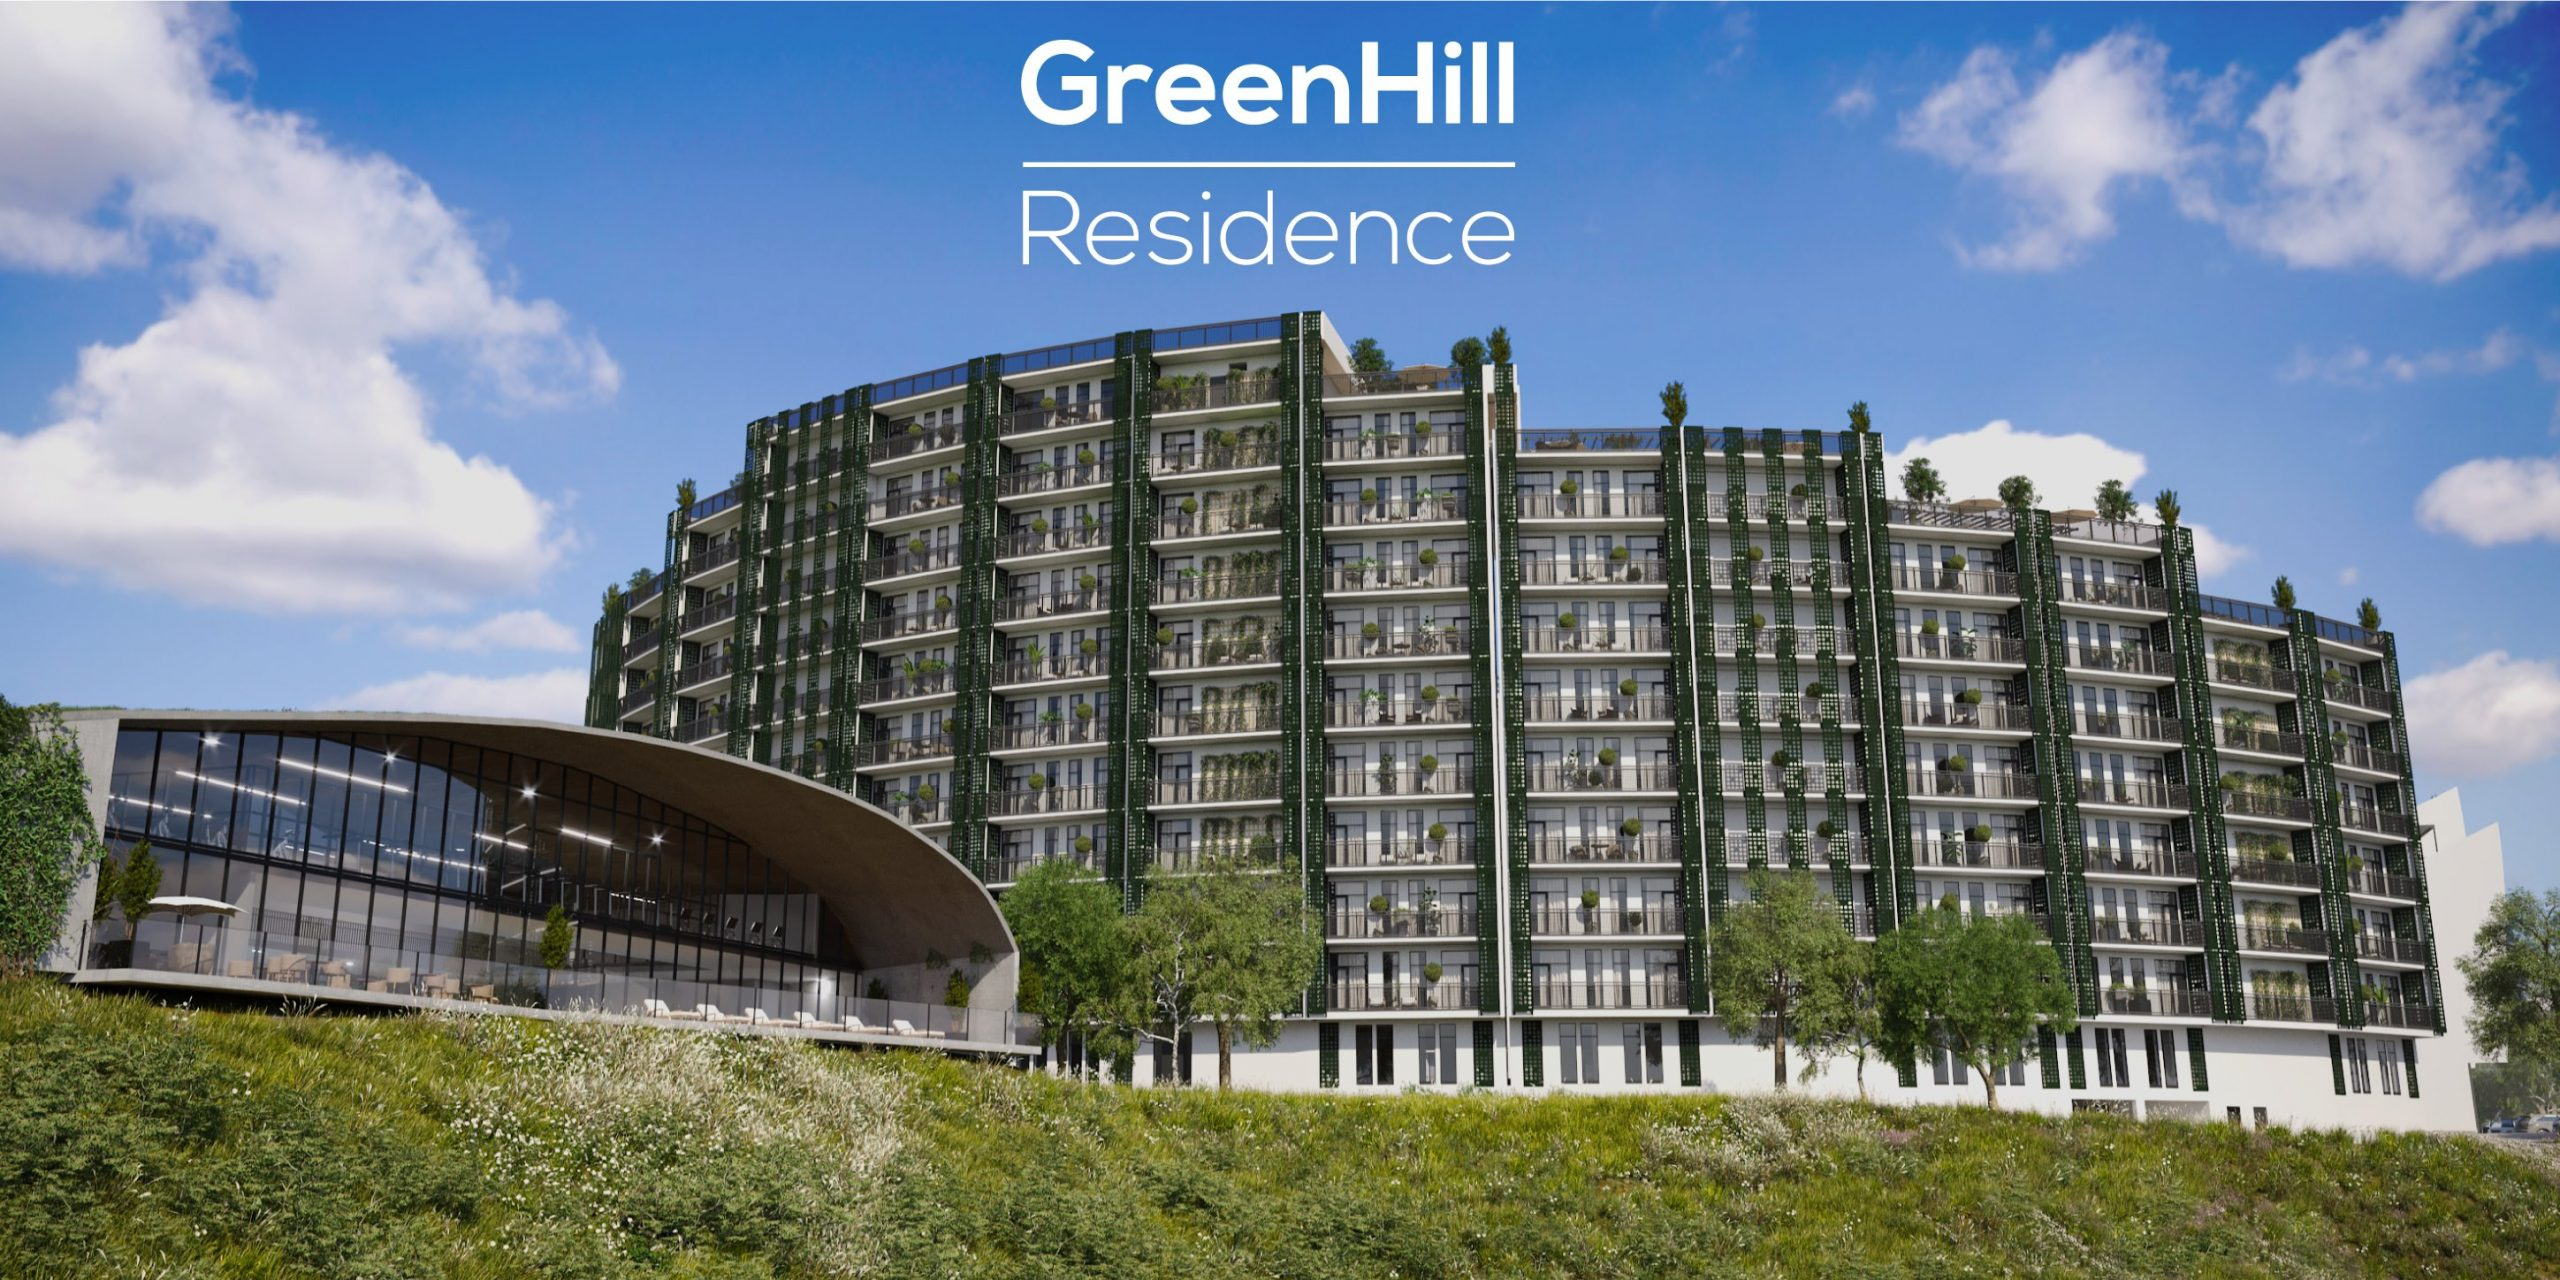 Greenhill Residence